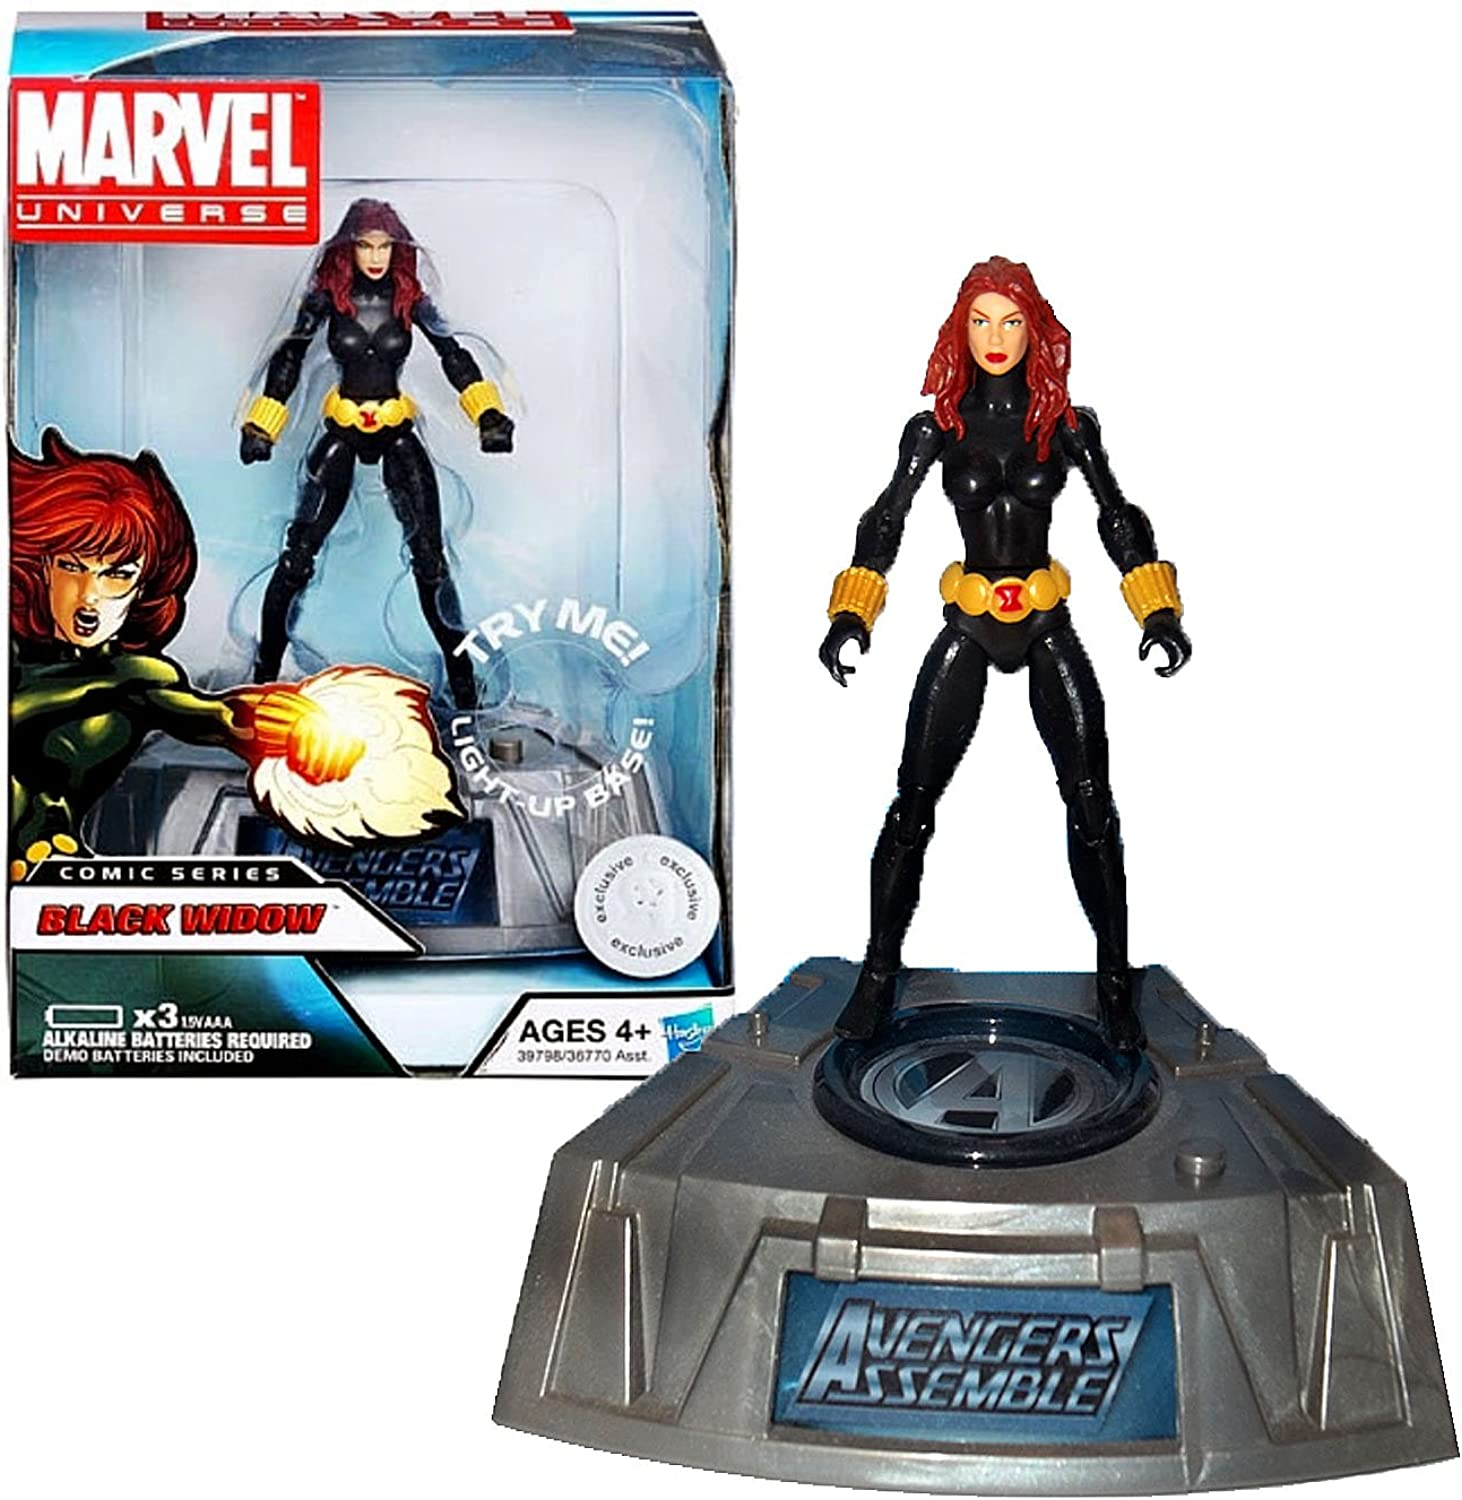 Marvel Universe Exclusive Comic Series Figure With Light Up Base Black Widow by Hasbro